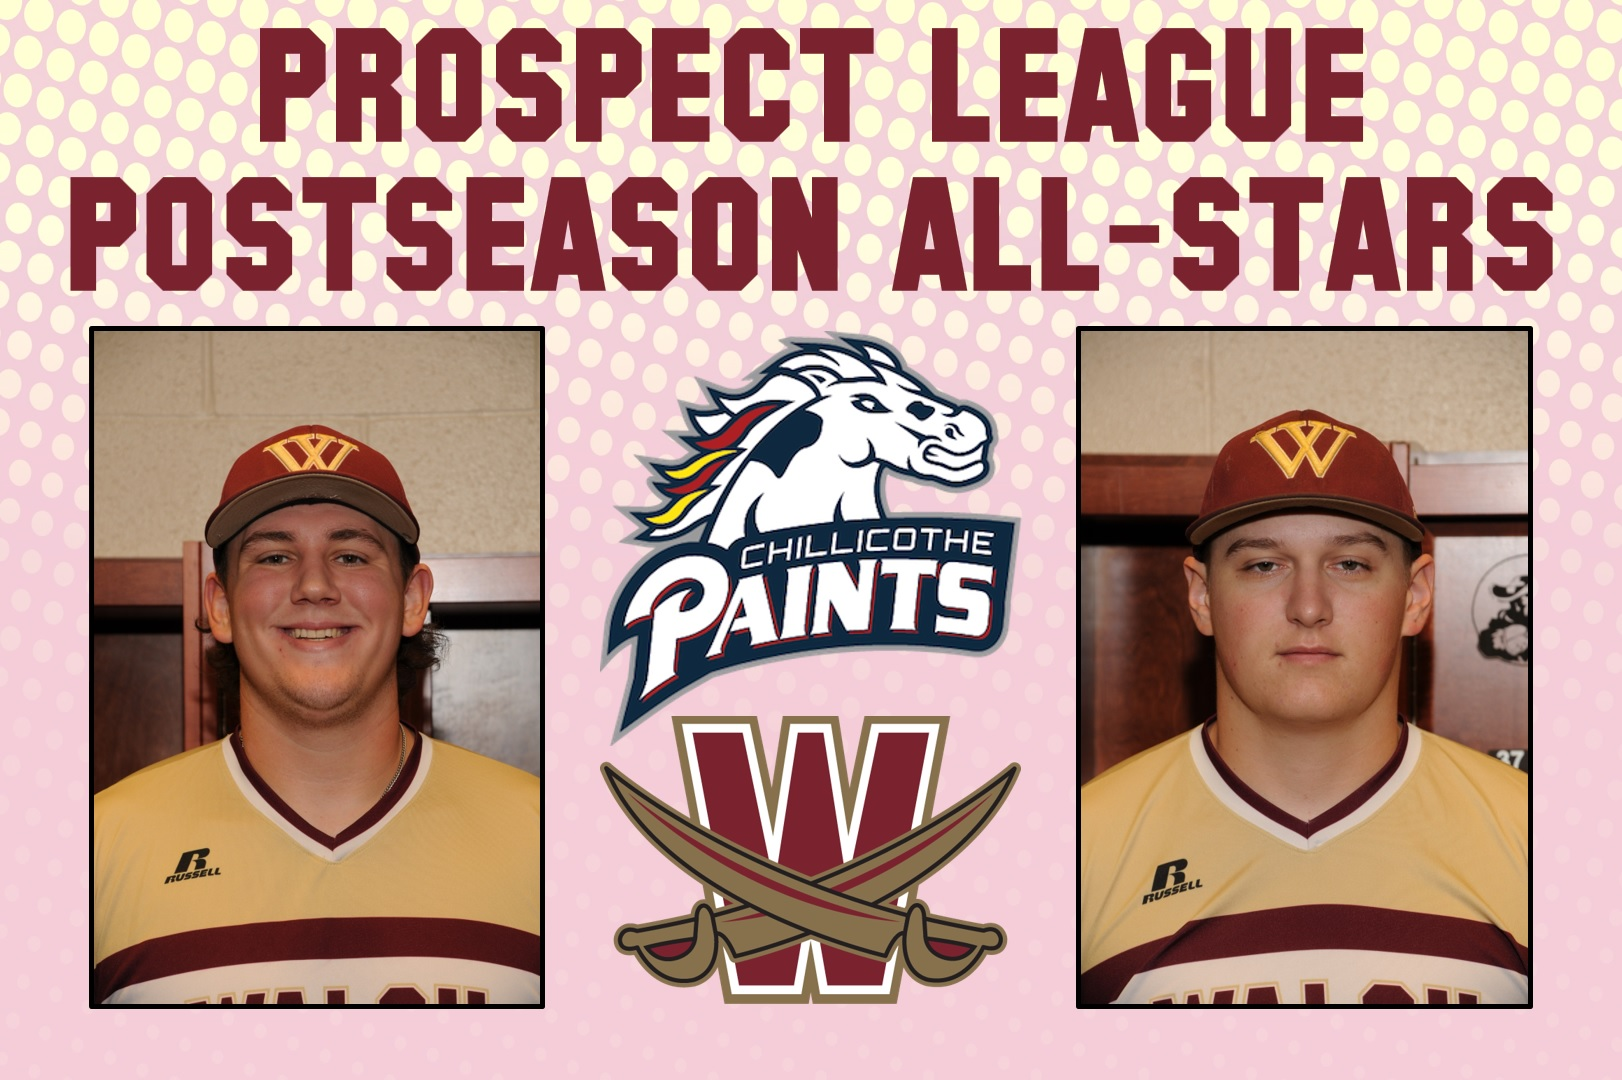 Czech, Bulchik Named Prospect League Postseason All-Stars